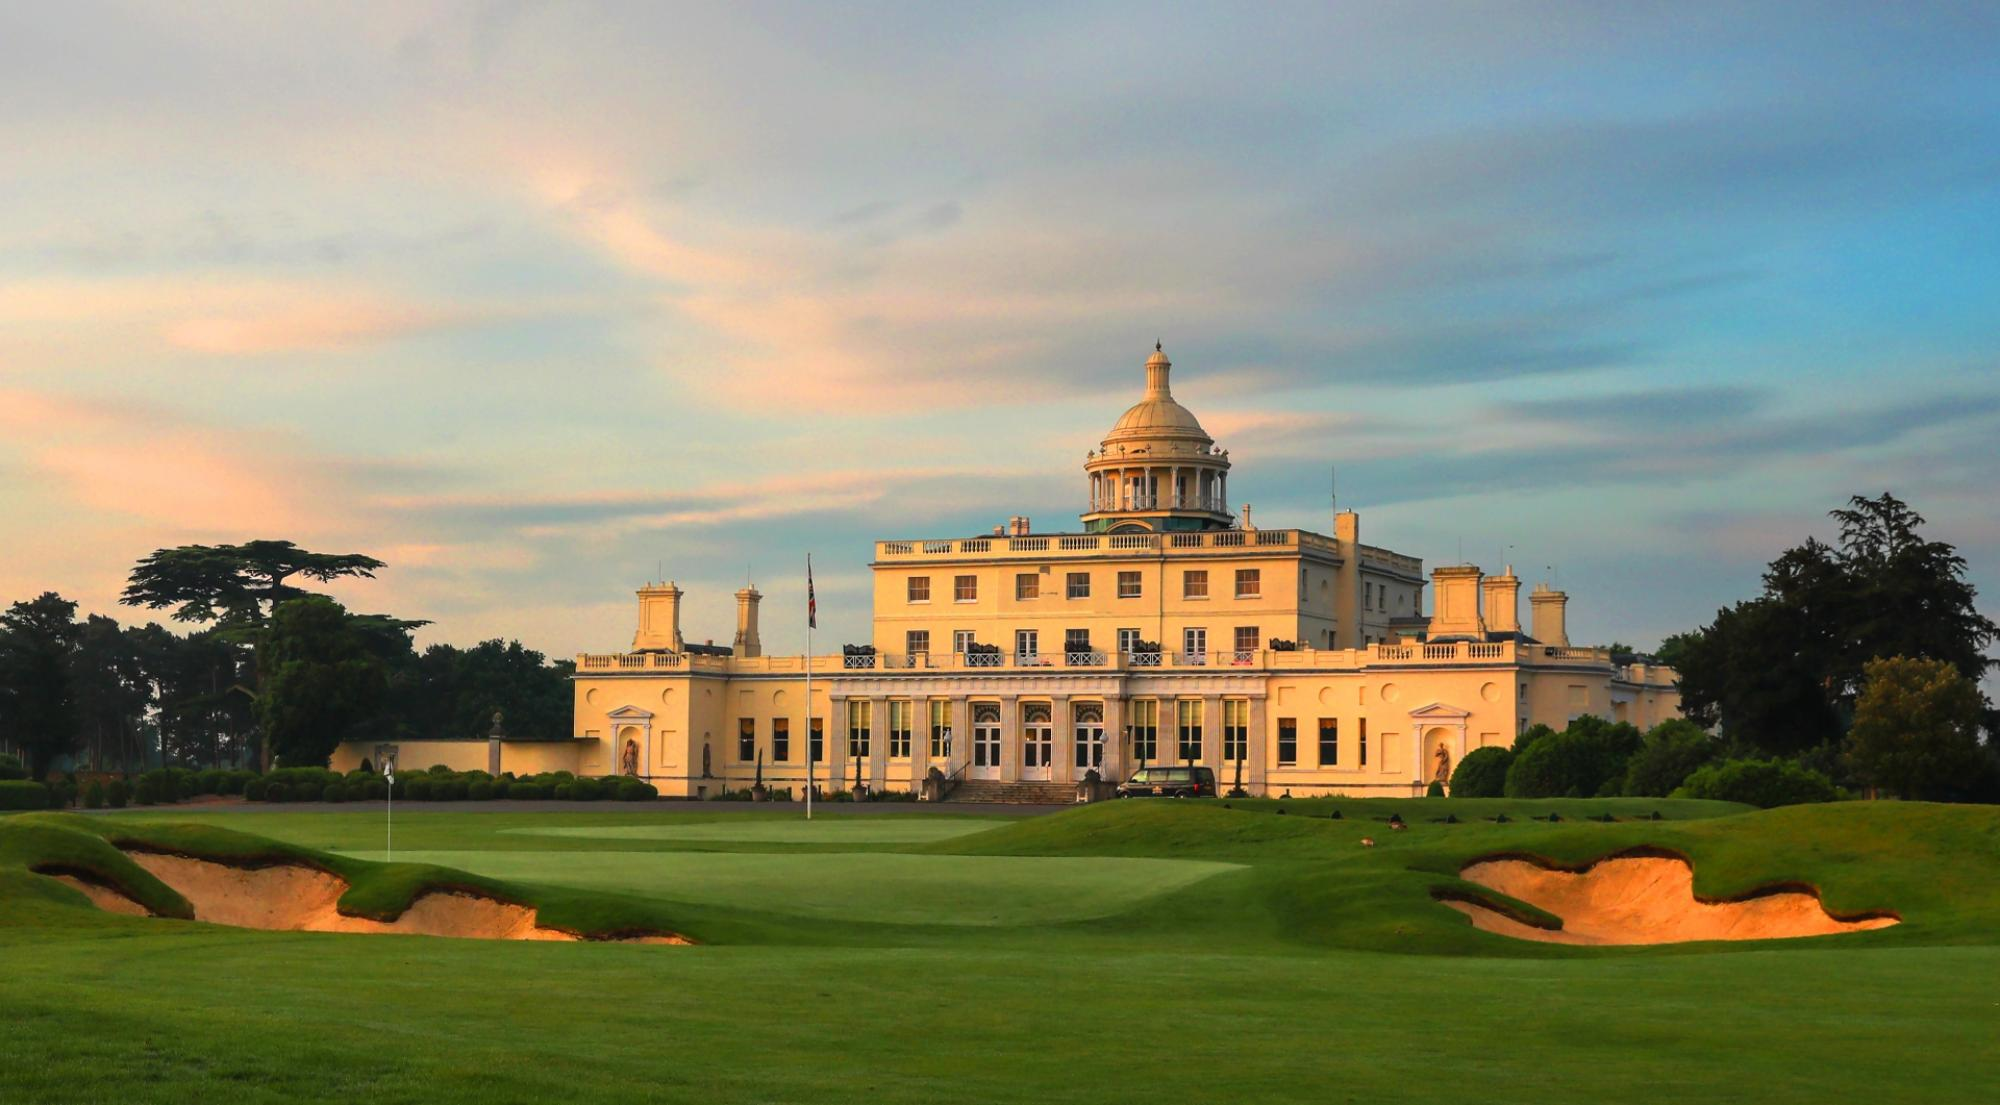 Stoke Park Country Club offers among the most desirable golf course in Buckinghamshire